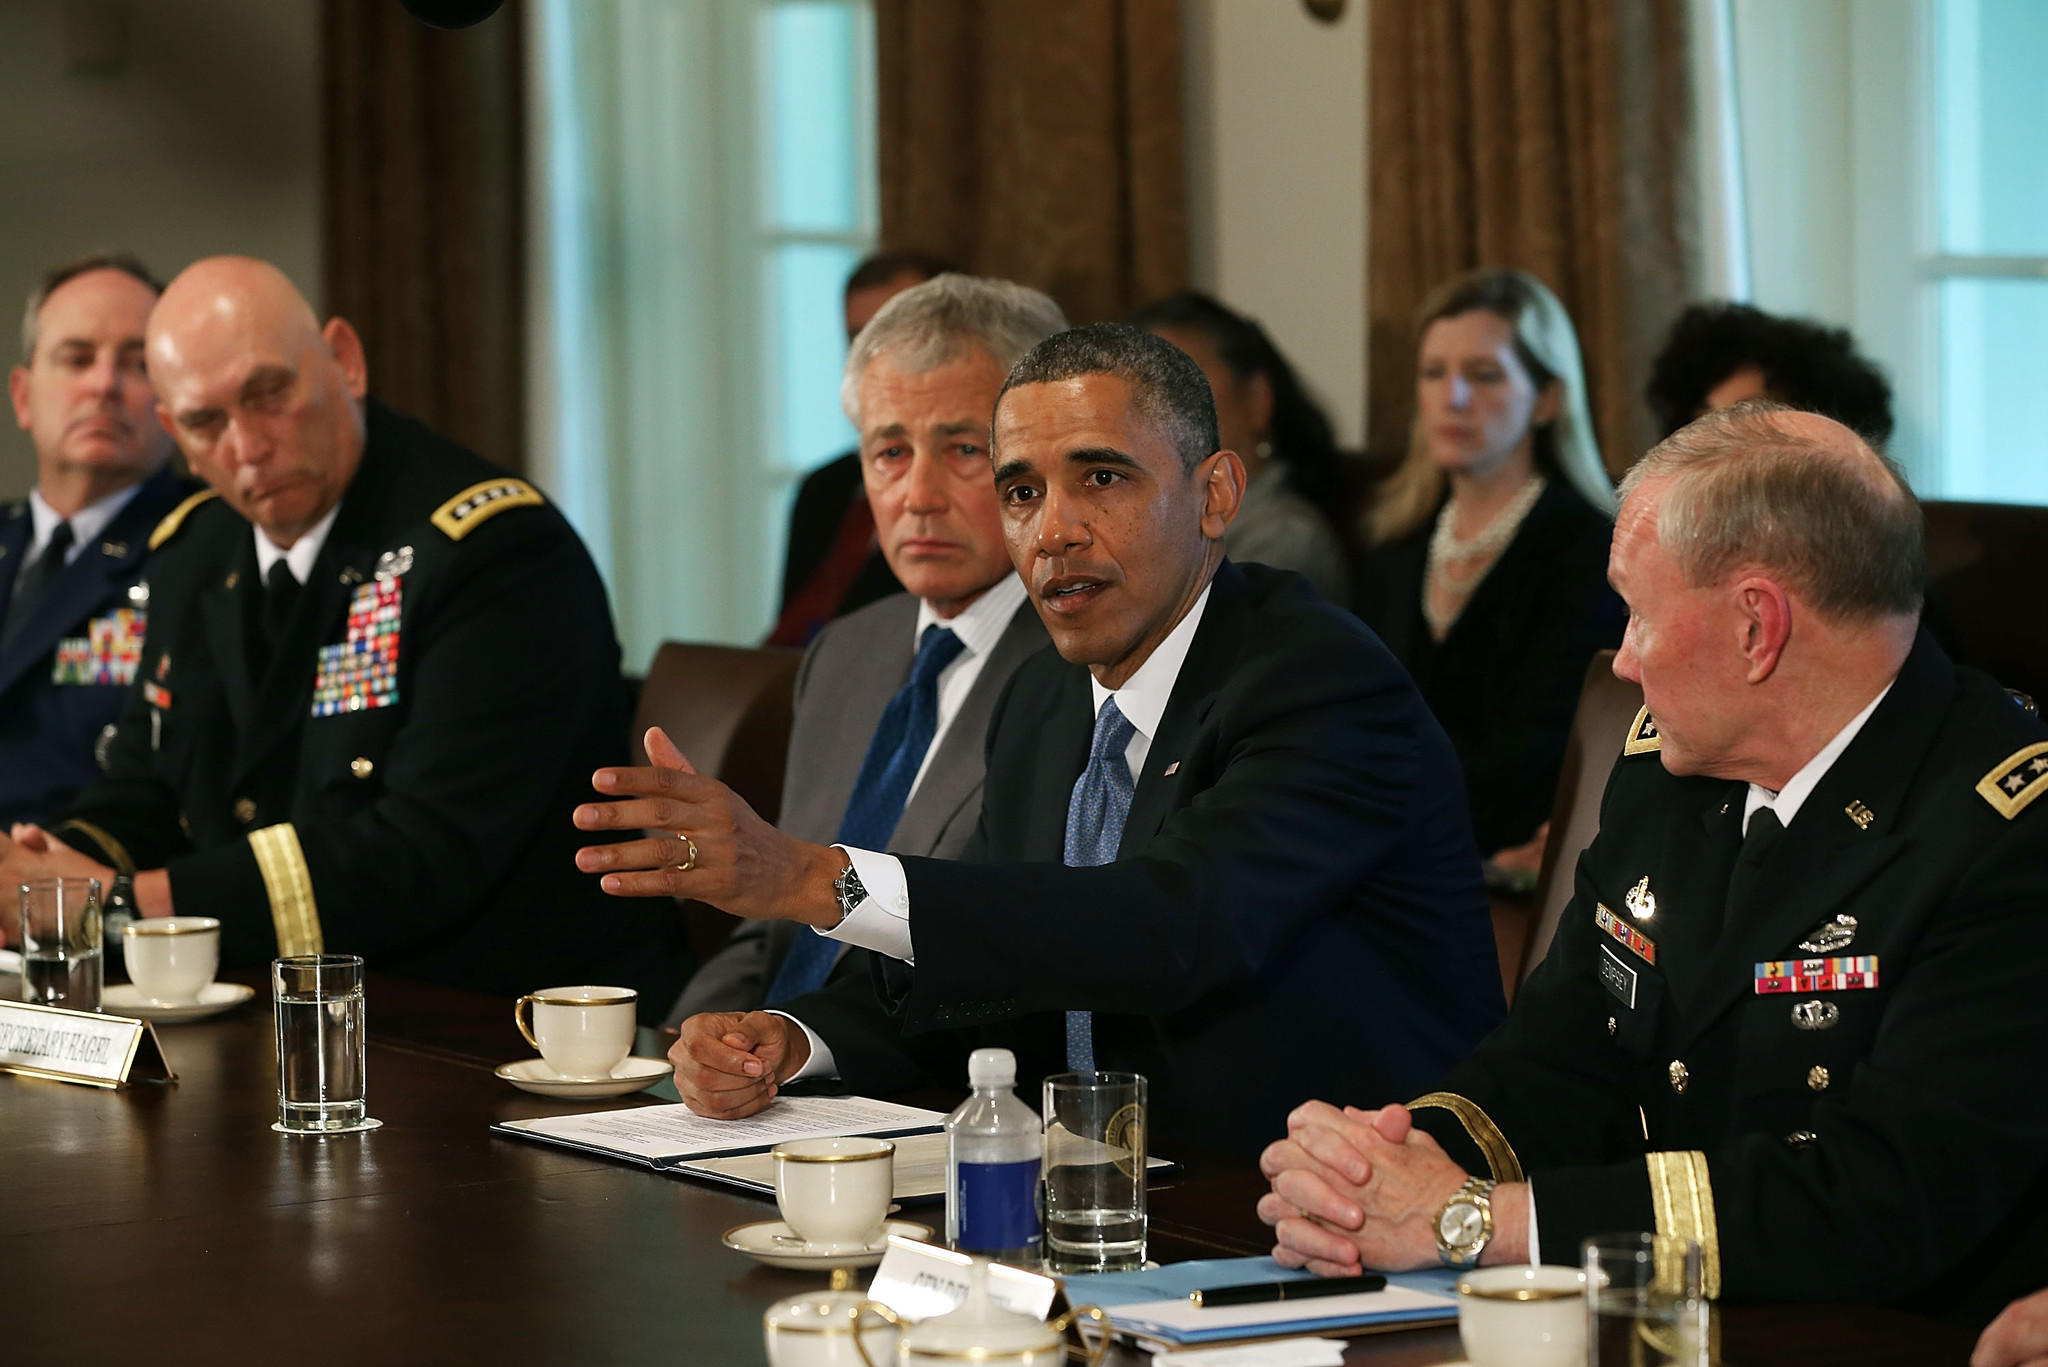 President Barack Obama speaks as Defense Secretary Chuck Hagel (3rd L), U.S. Army Chief of Staff Gen. Raymond Odienaro (2nd L), Air Force Chief of Staff Gen. Mark Welsh (L) and Chairman of the Joint Chiefs of Staff Gen. Martin Dempsey (R) look on during a meeting at the White House in 2013. Obama met with military leaders in the wake of several recent high-profile sex scandals.